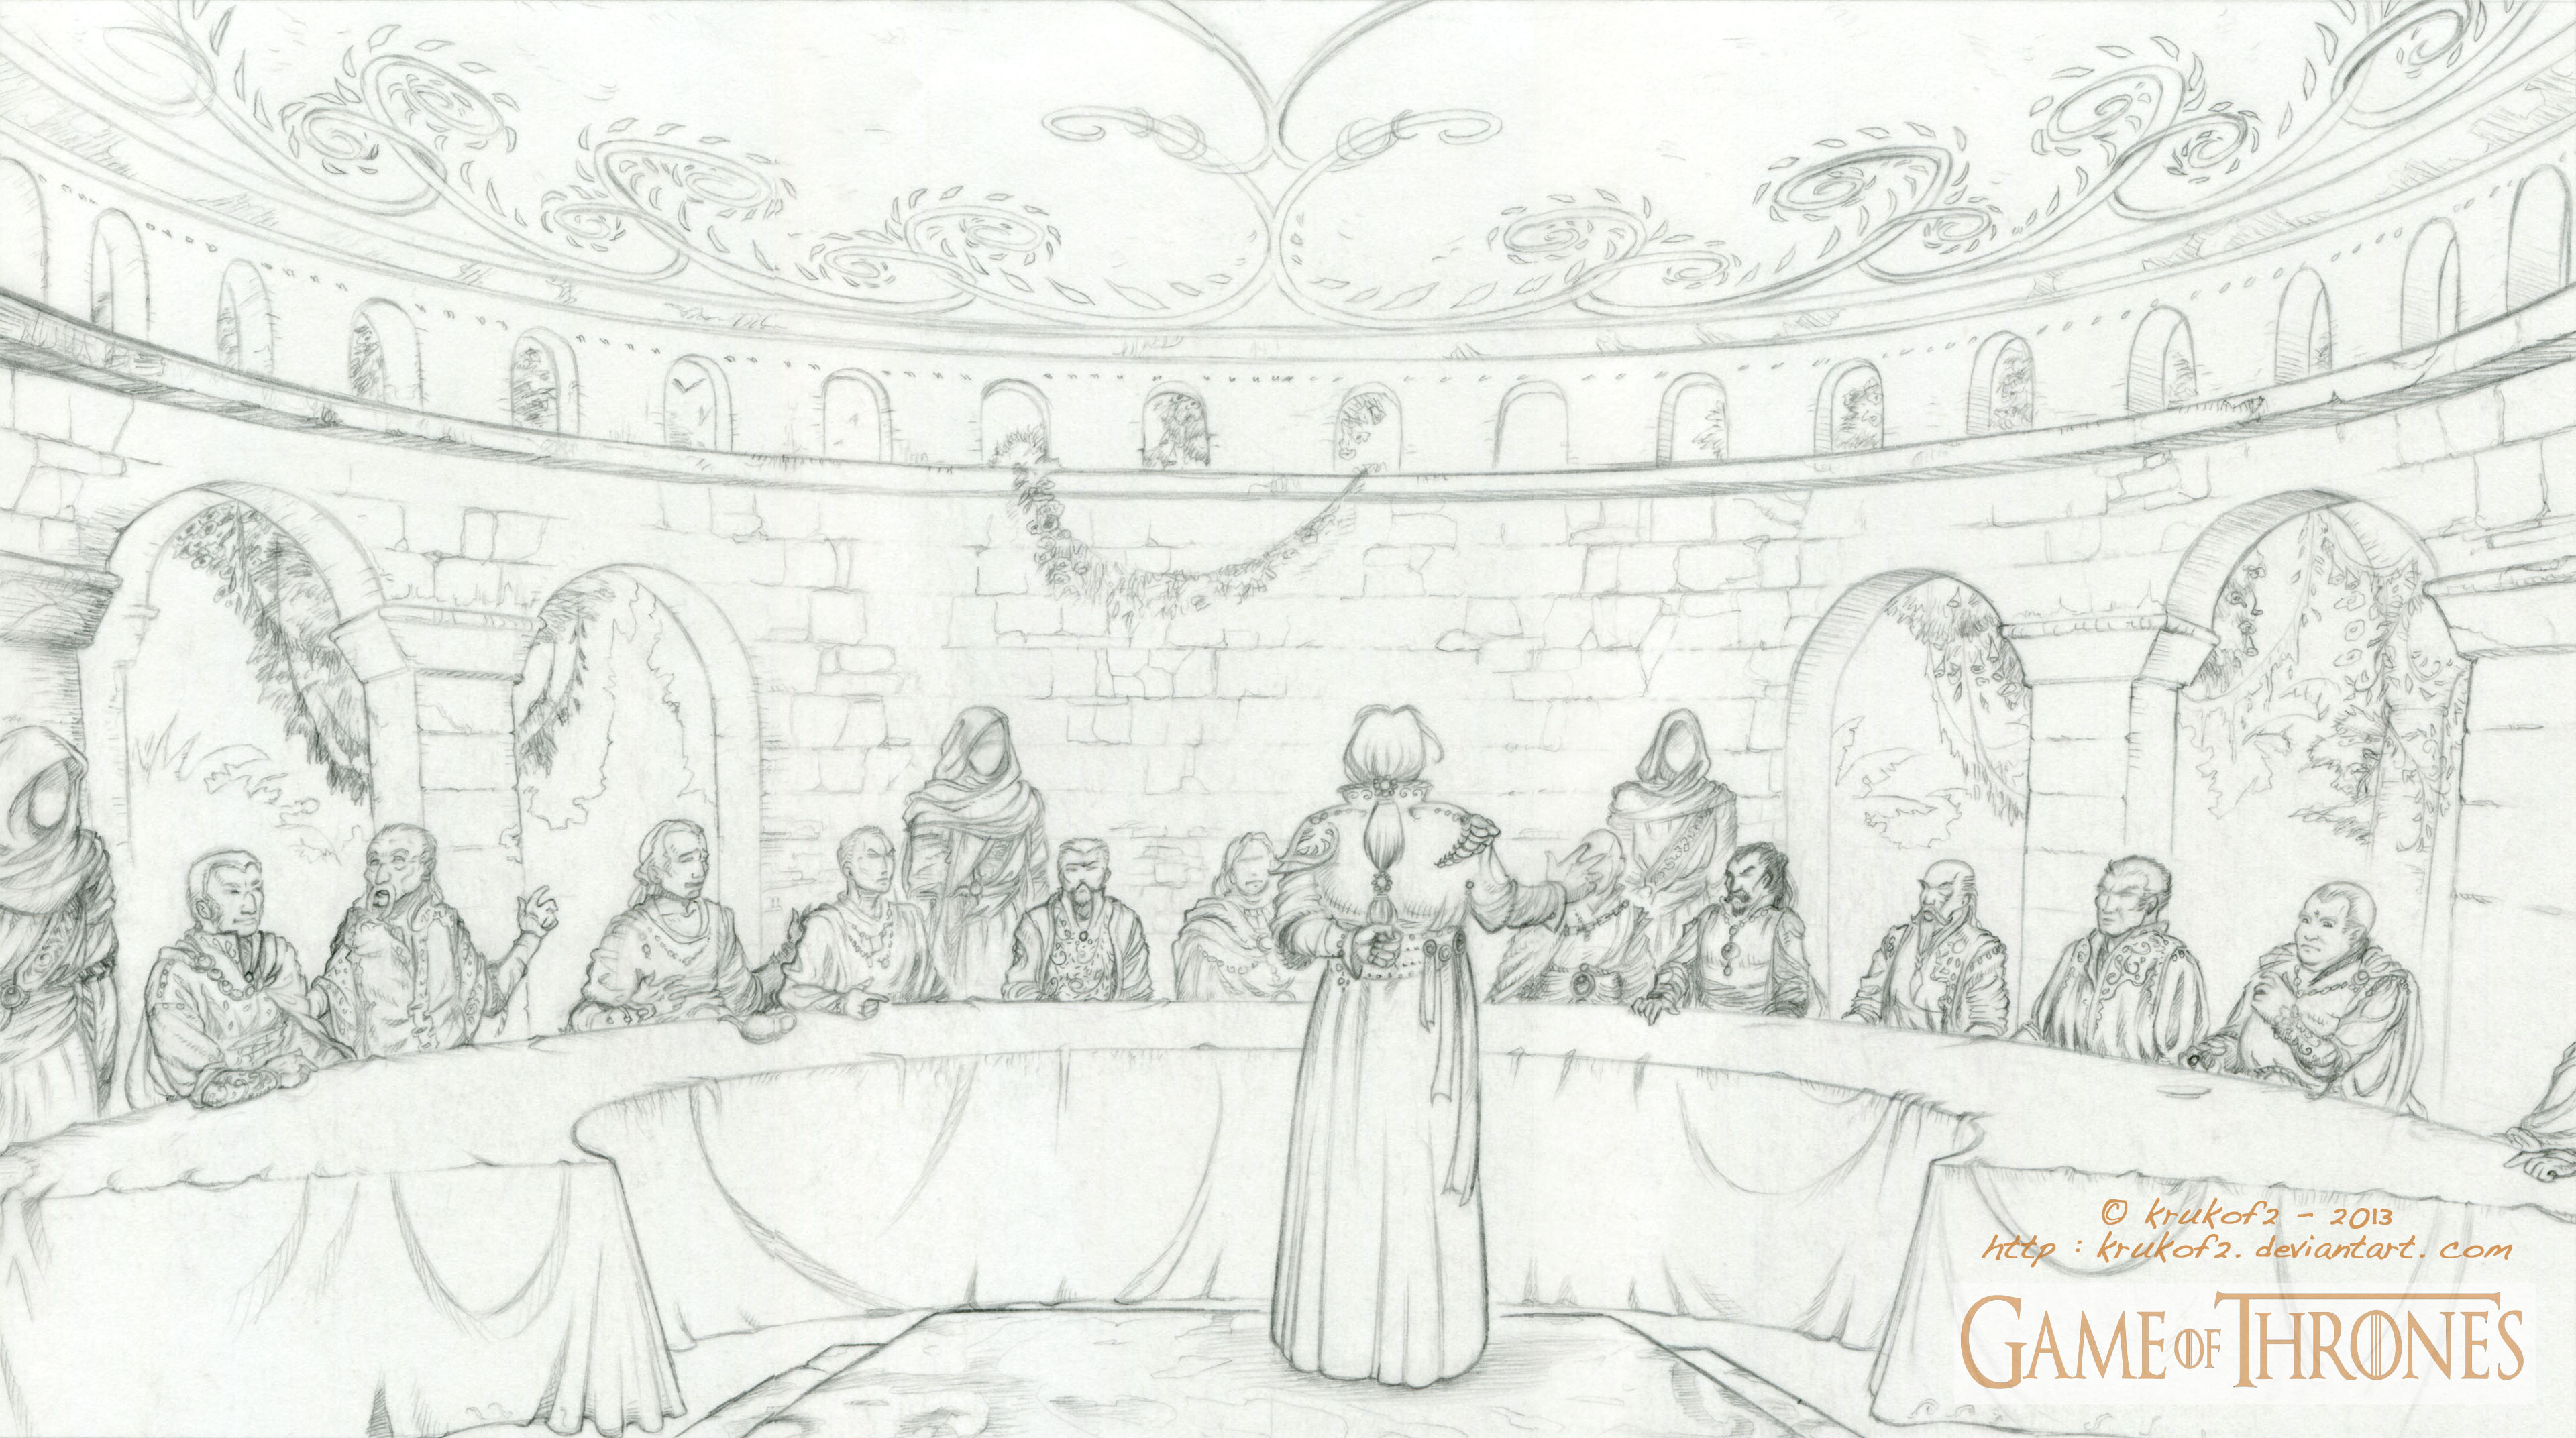 A GAME of THRONES - The Council chamber of Qarth. by krukof2